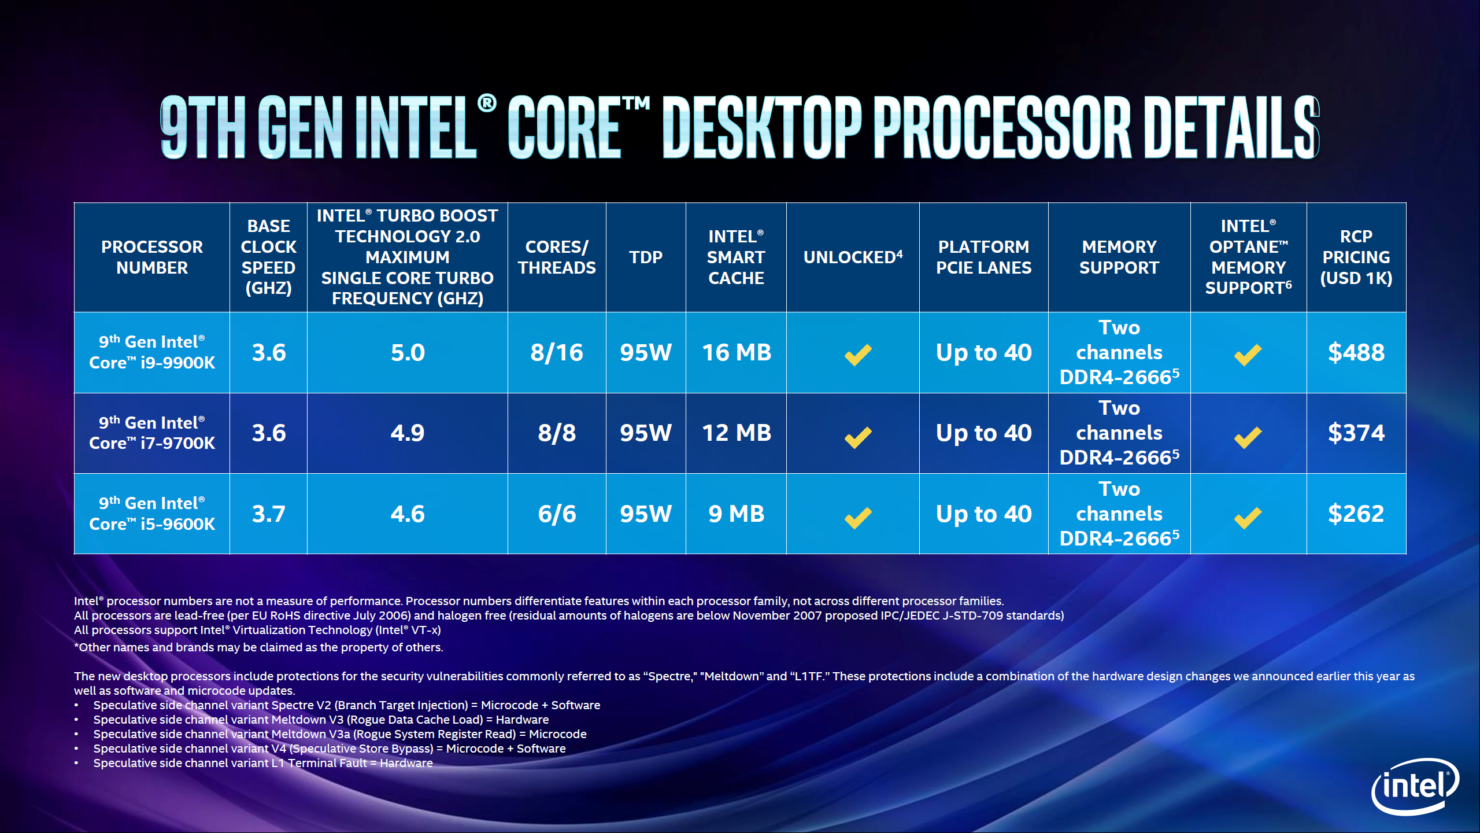 8C16T、最大Boost至5GHz:Intel發布第九代Core處理器i9-9900K、i7-9700K和i5-9600K - XFastest - Intel-9th-Gen-Core-Coffee-Lake-Z390-CPUs_5-1480x833.png